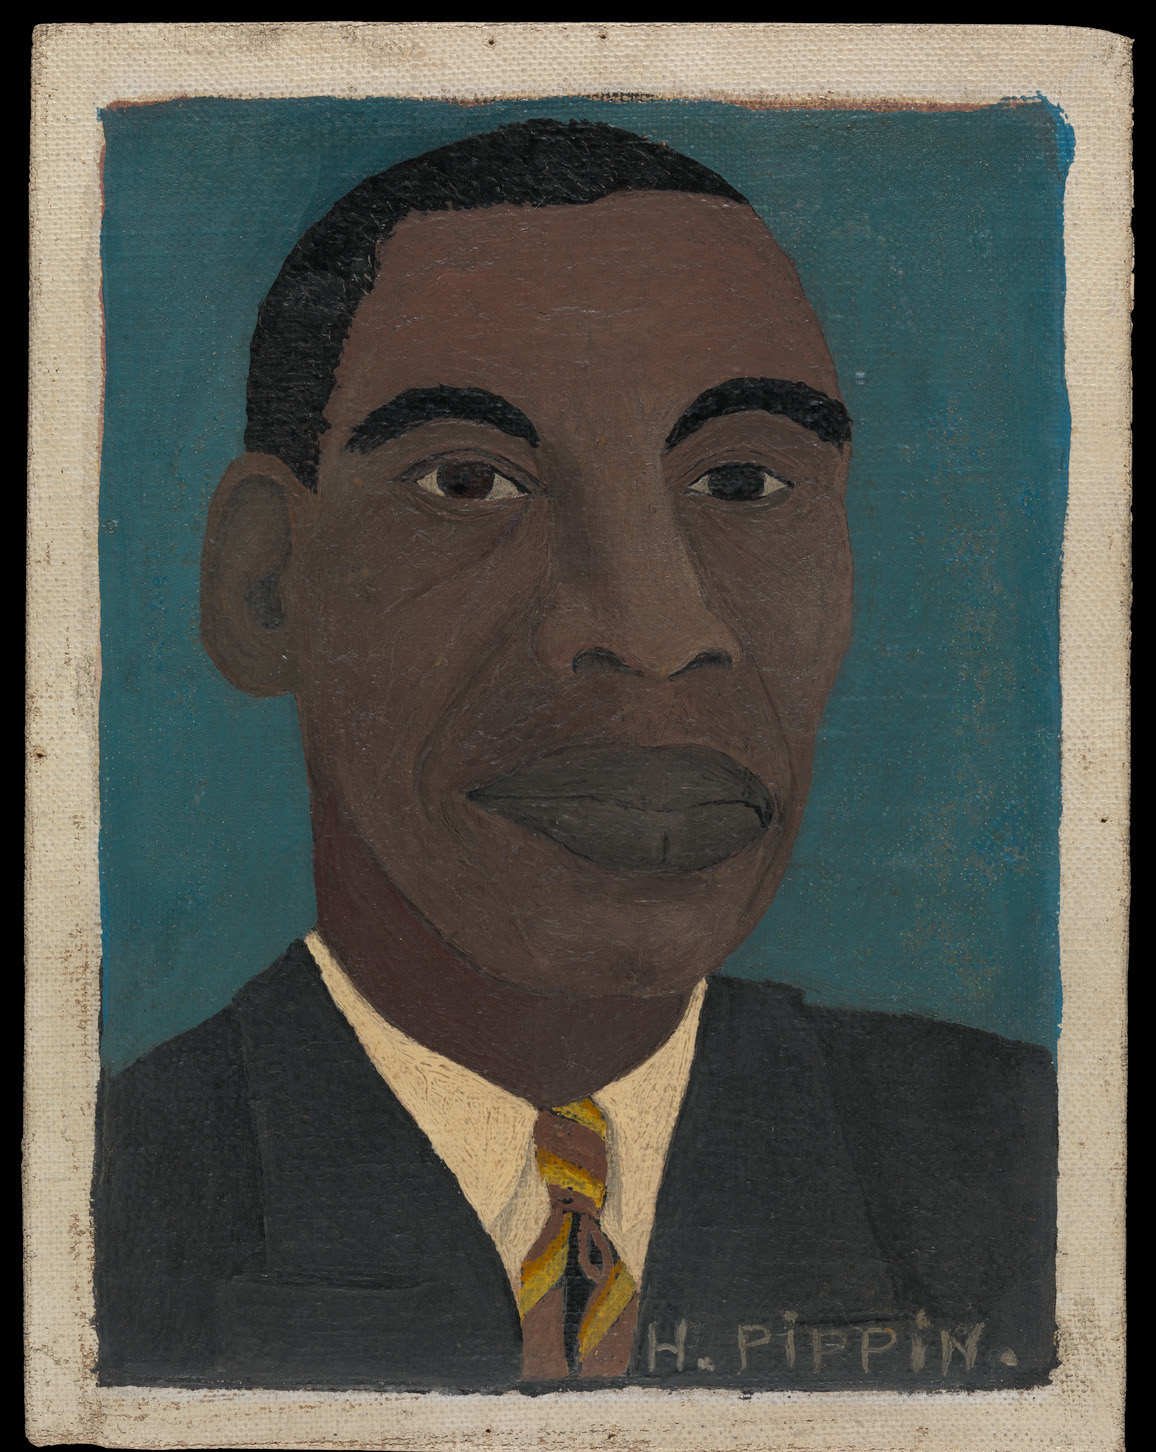 Horace Pippin, Self-Portrait II, 1944.  Oil on canvas, adhered to cardboard, 8 1/2 x 6 1/2 in.  Collection of the Metropolitan Museum of Art, bequest of Jane Kendall Gingrich, 1982.